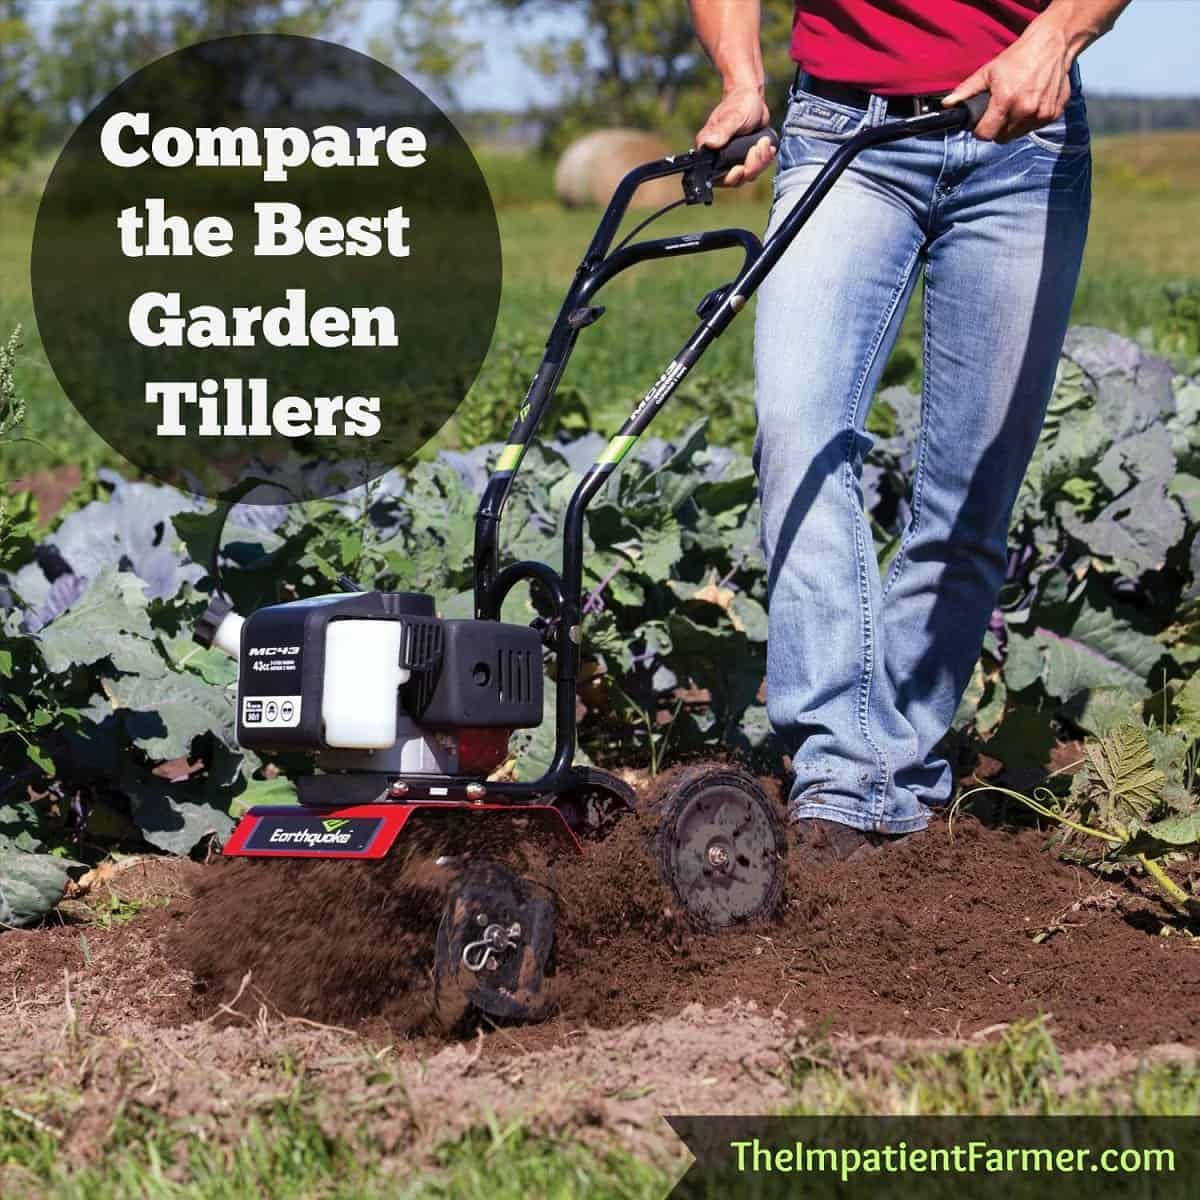 We compare and review the top rototillers to help you find the right model for your home garden. Plus safety tips, buying guides, best practices and the latest prices.